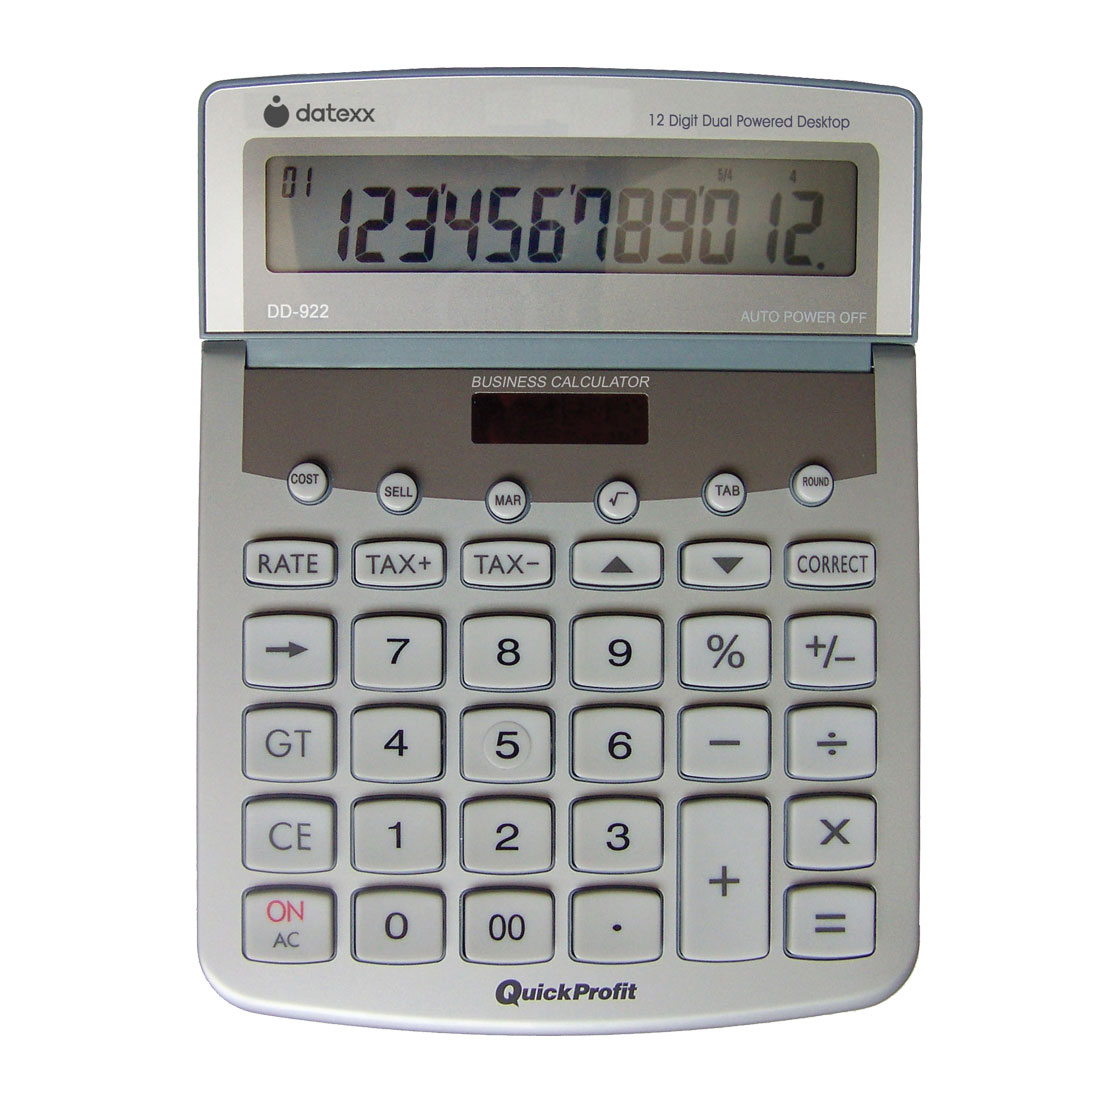 QuickProfit Business Calculator Price: $19.95